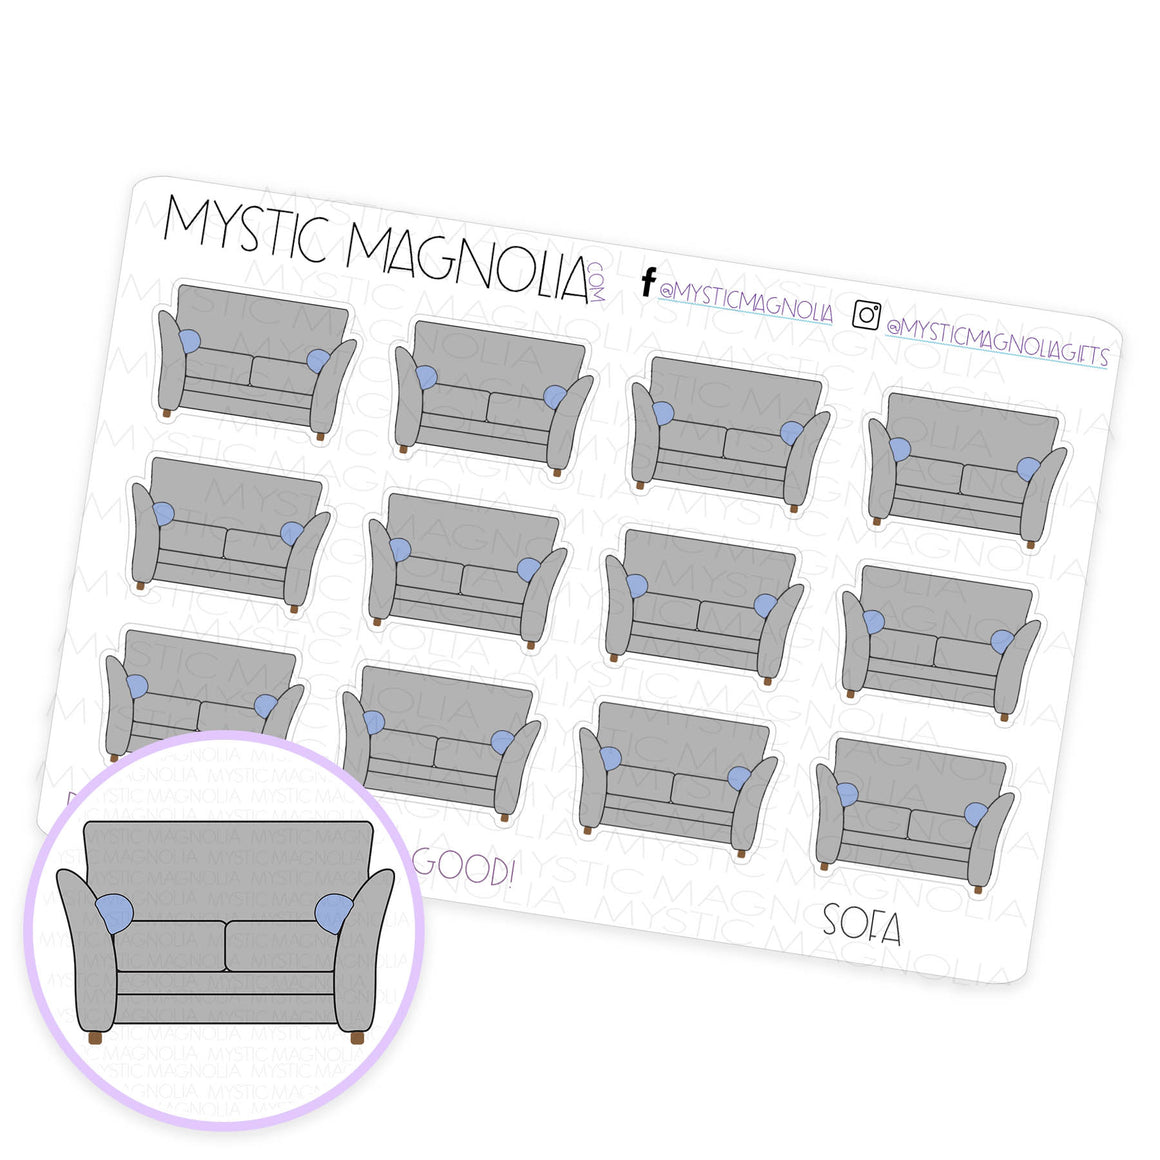 Sofa Planner Sticker Sheet